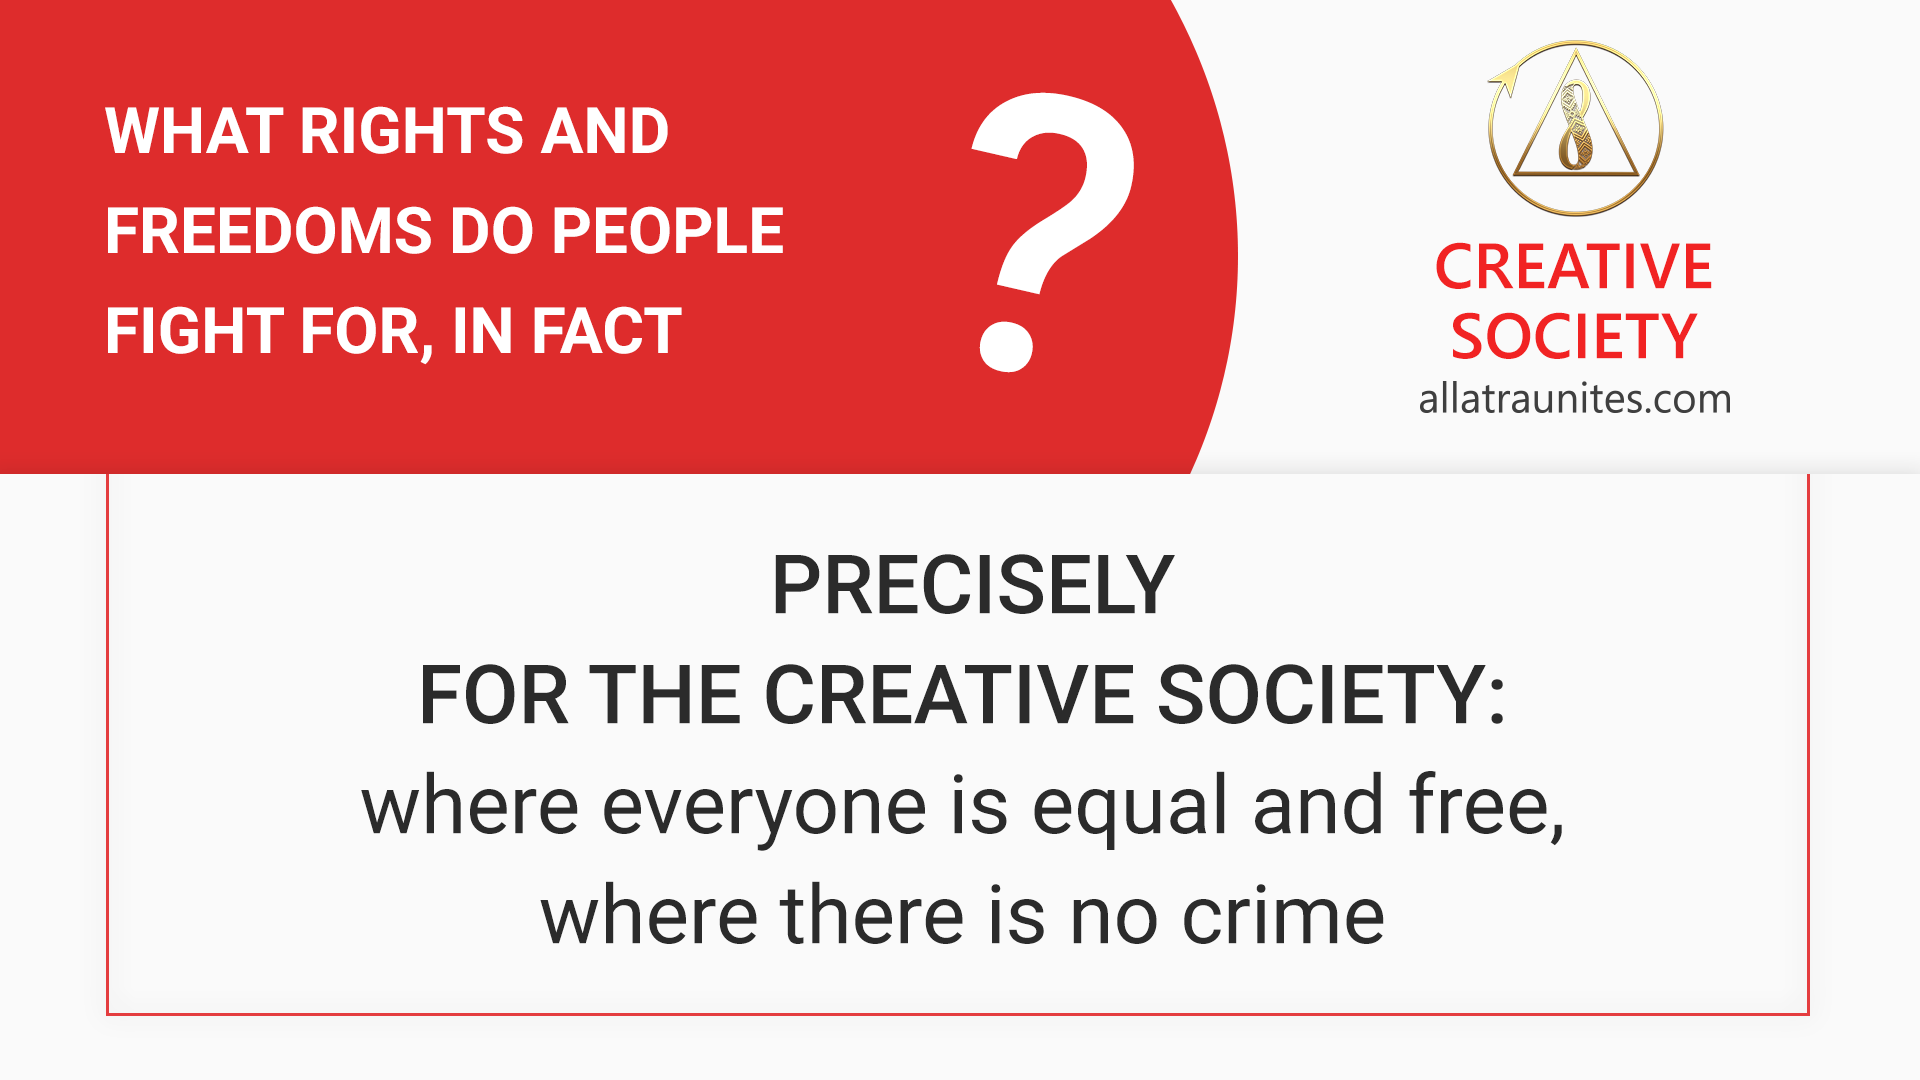 Rights and freedoms of people in the Creative Society